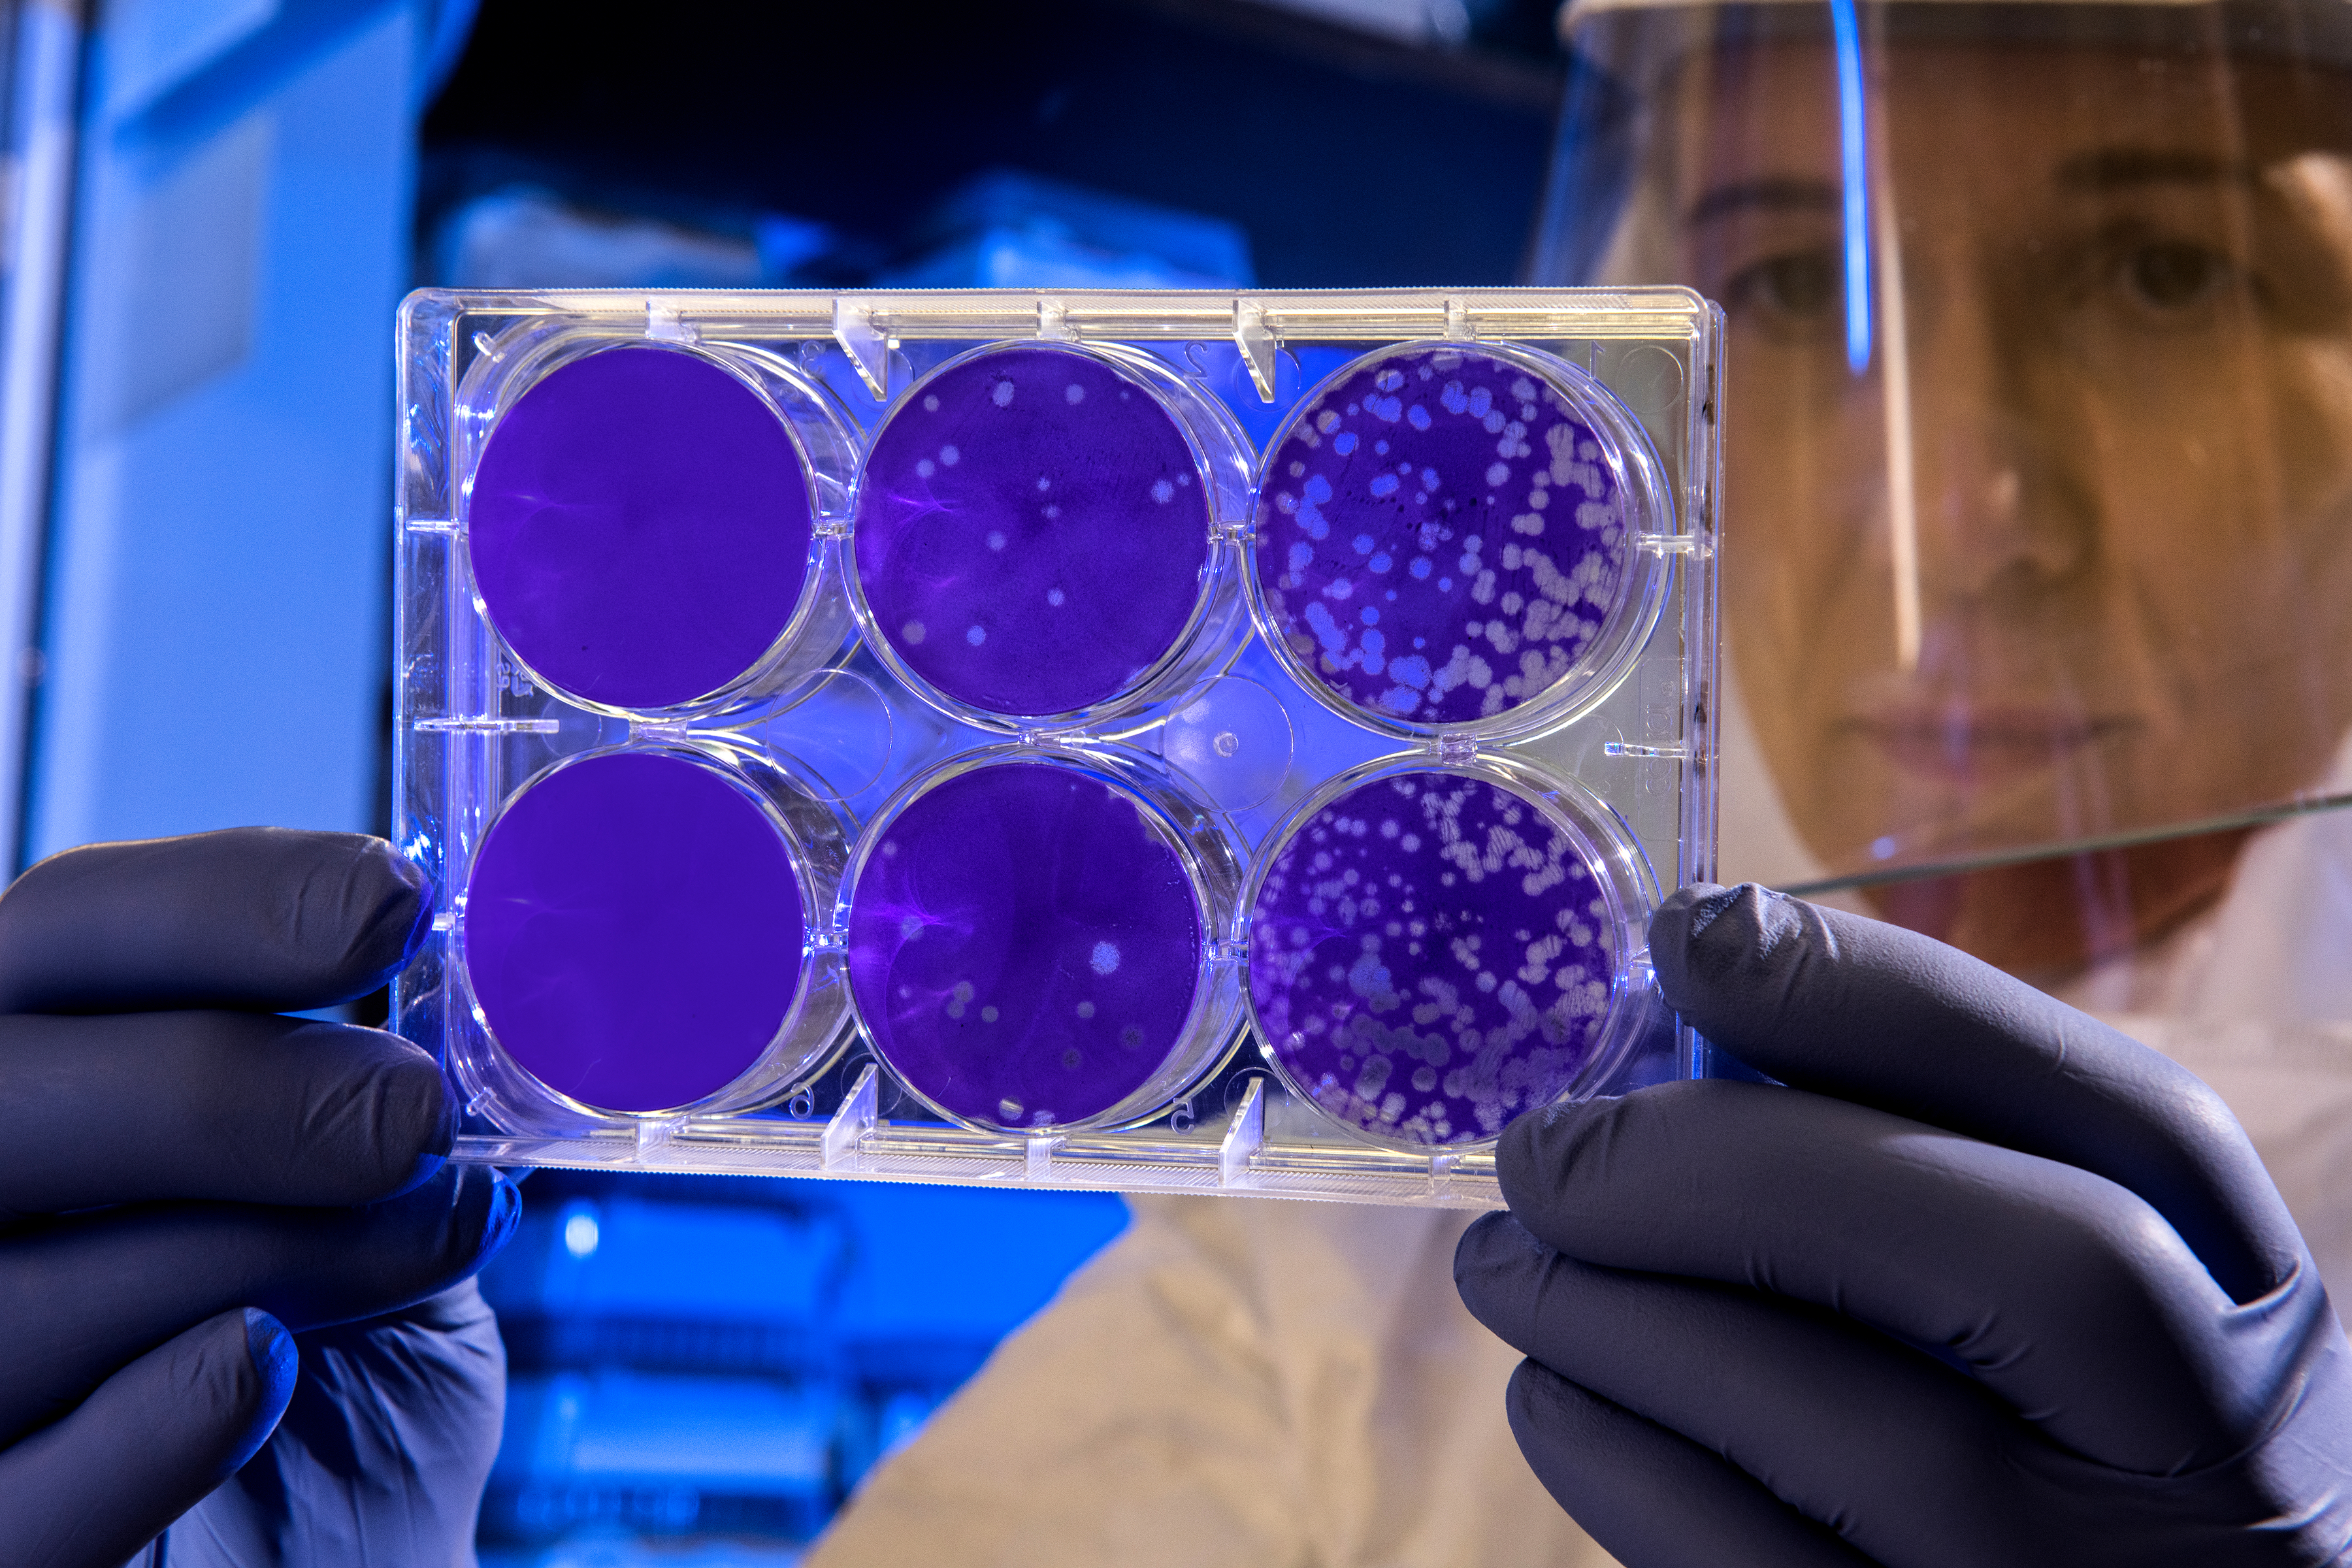 """""""Scientist examines the result of a plaque assay, which is a test that allows scientists to count how many flu virus particles (virions) are in a mixture. To perform the test, scientists must first grow host cells that attach to the bottom of the plate, and then add viruses to each well so that the attached cells may be infected. After staining the uninfected cells purple, the scientist can count the clear spots on the plate, each representing a single virus particle."""""""